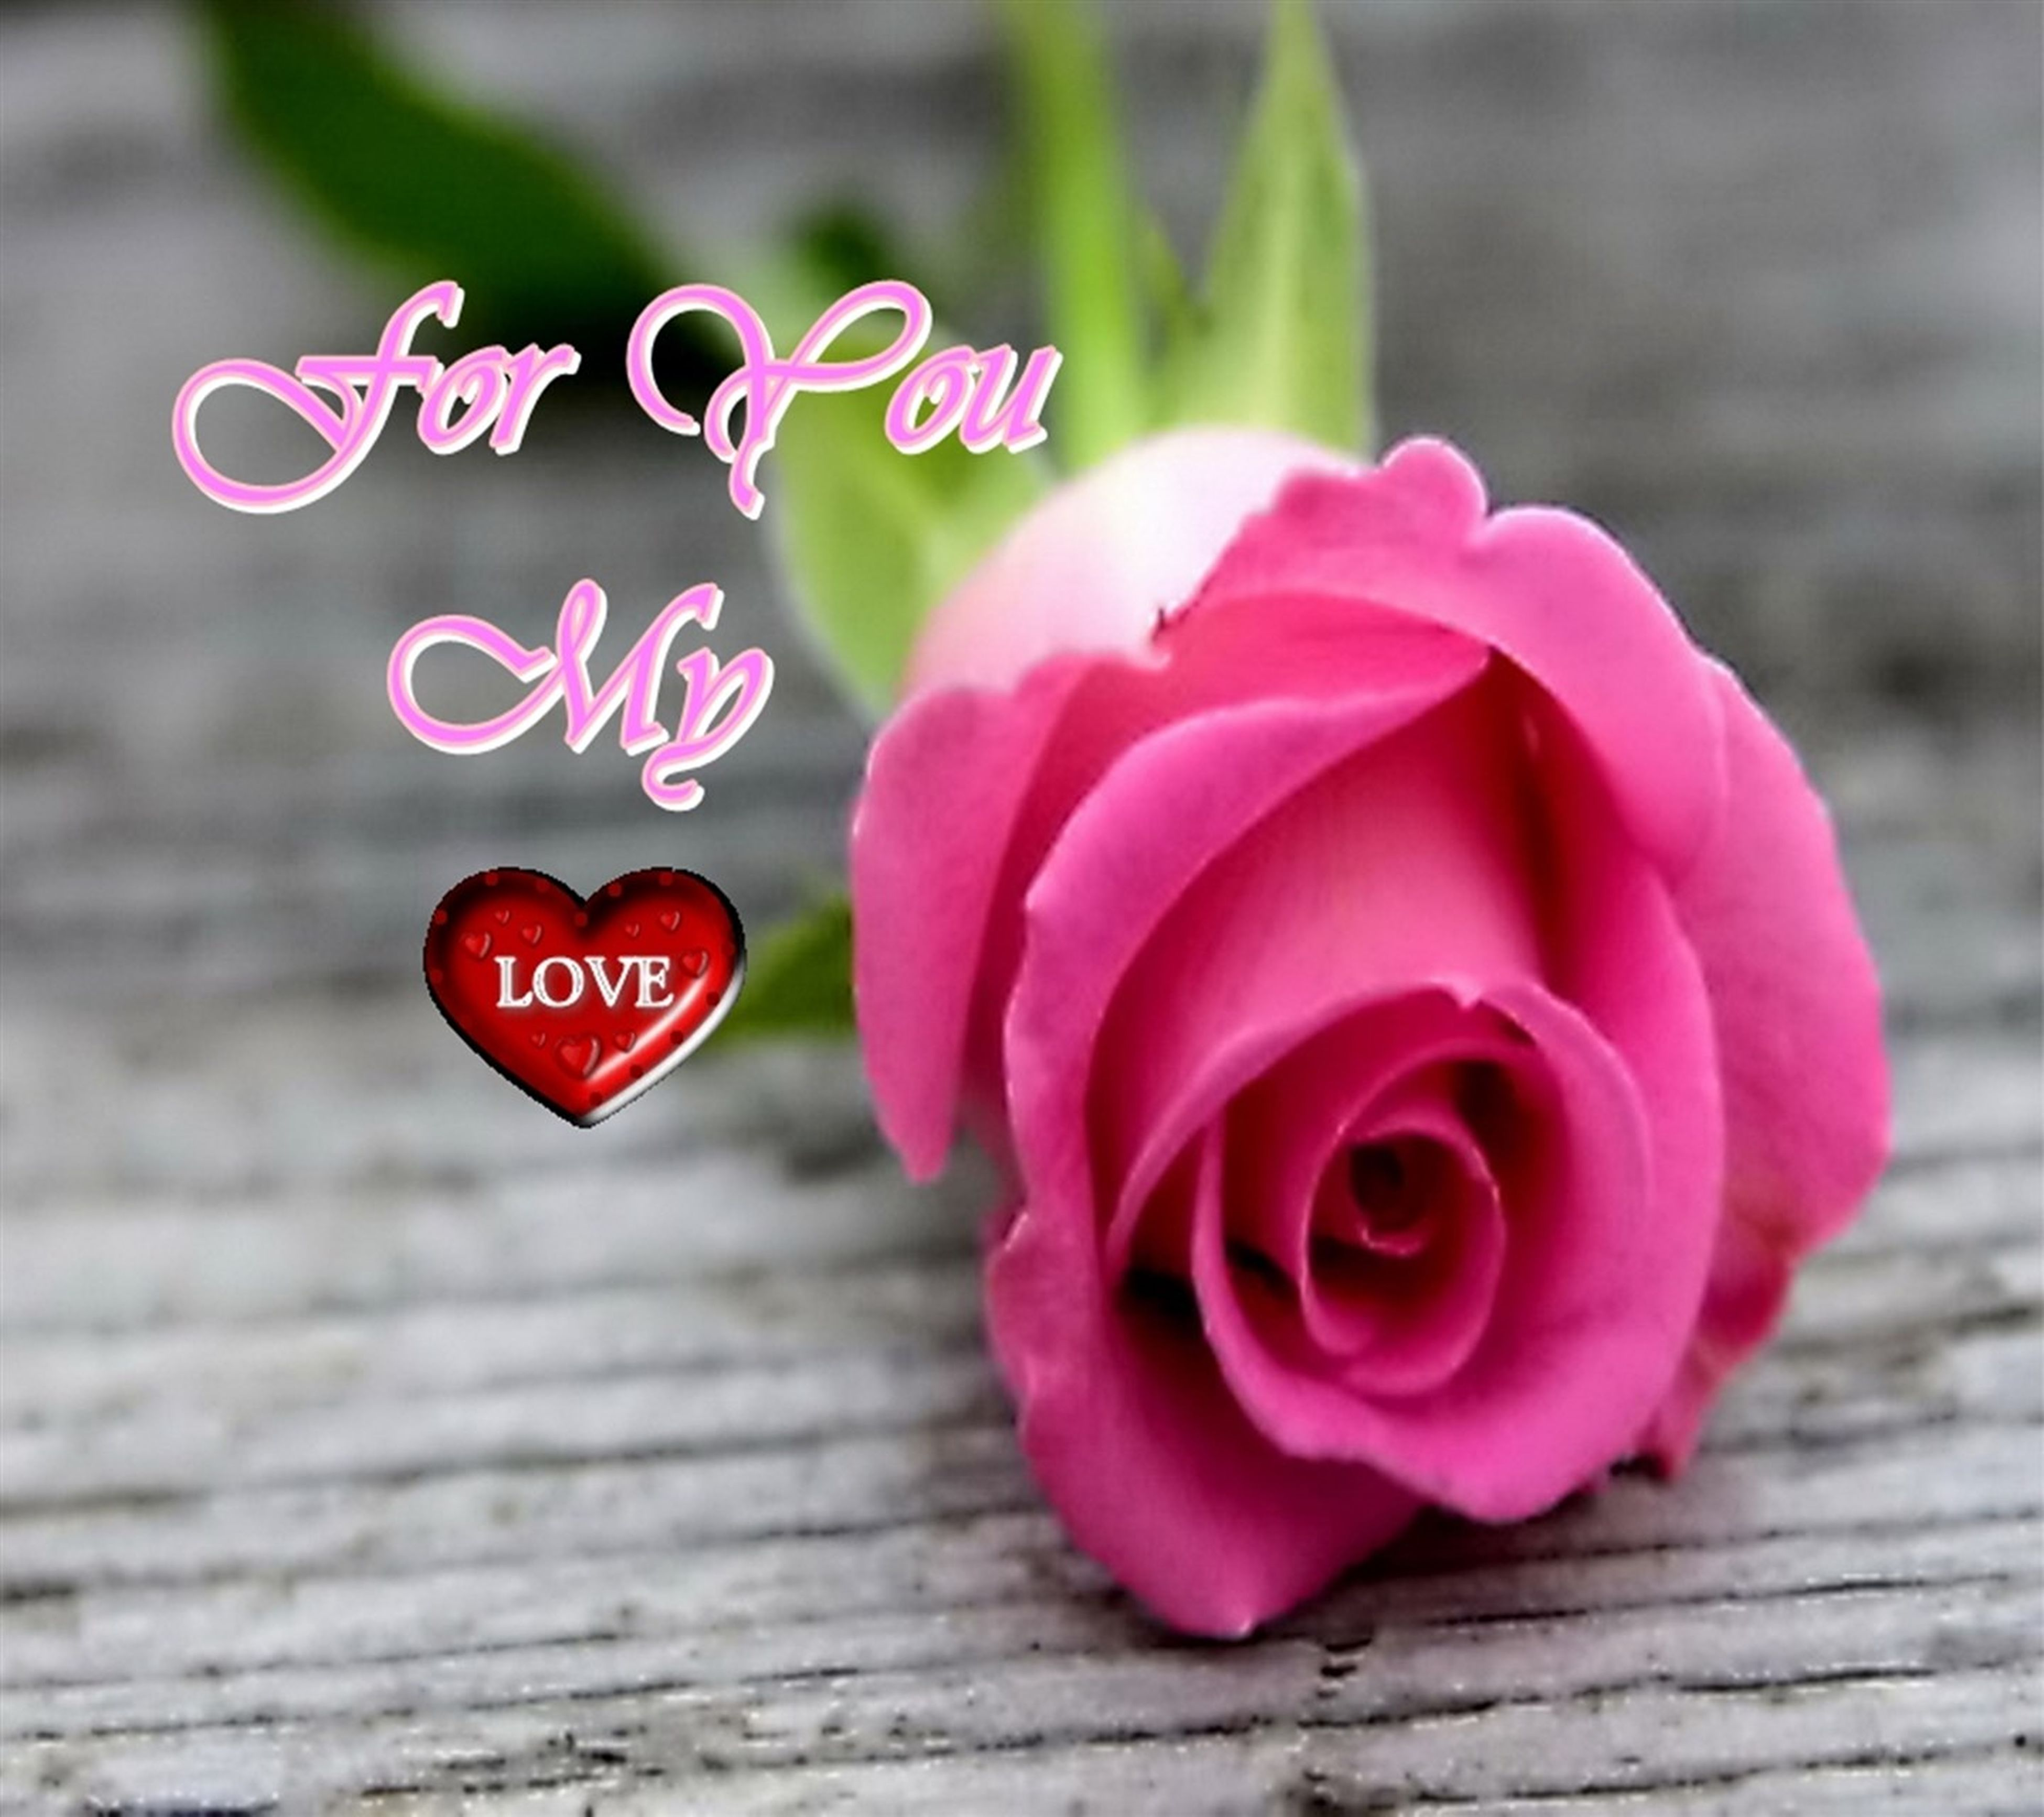 pink color, flower, text, close-up, red, focus on foreground, wood - material, western script, freshness, communication, wooden, petal, love, selective focus, table, indoors, no people, fragility, rose - flower, heart shape